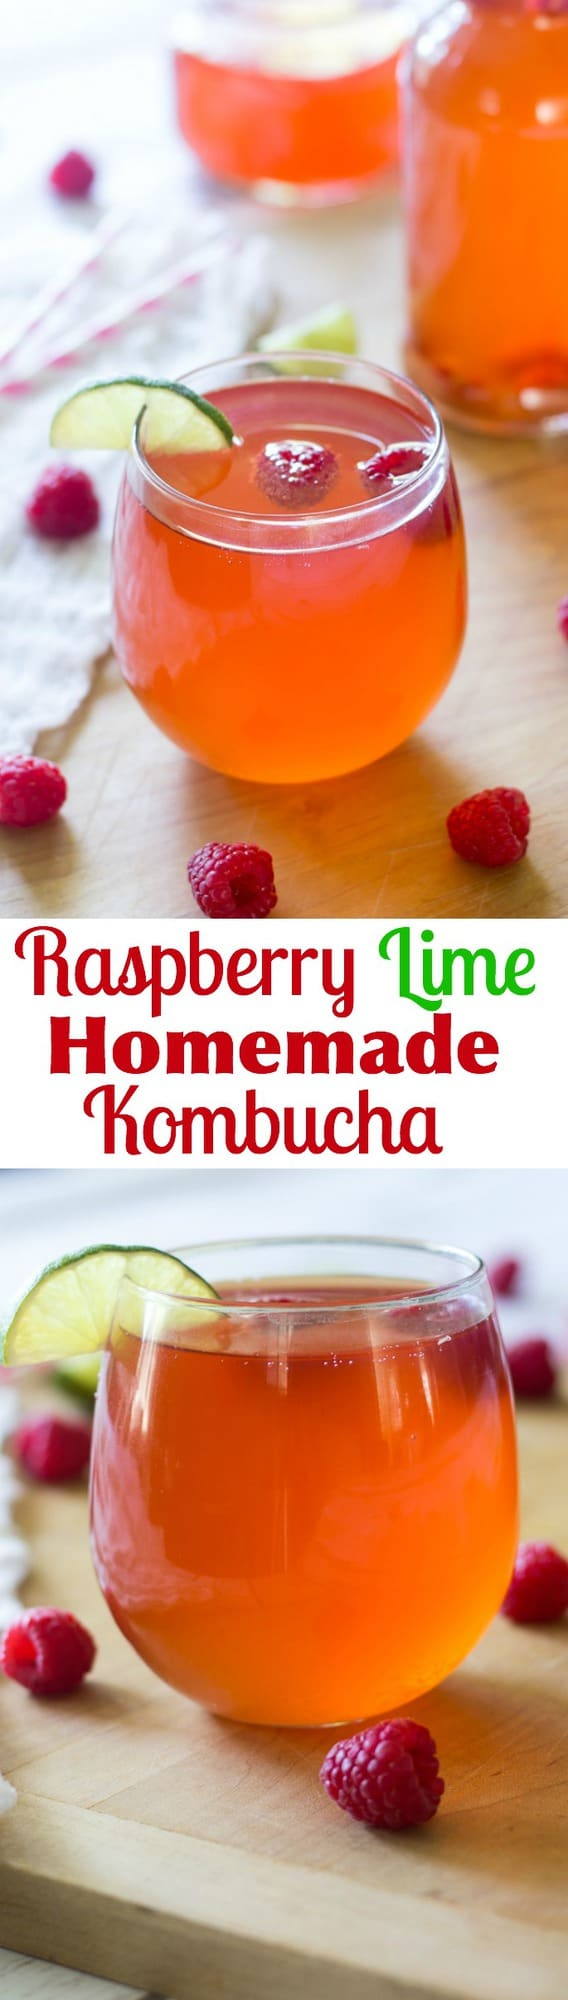 Raspberry Lime Homemade Kombucha